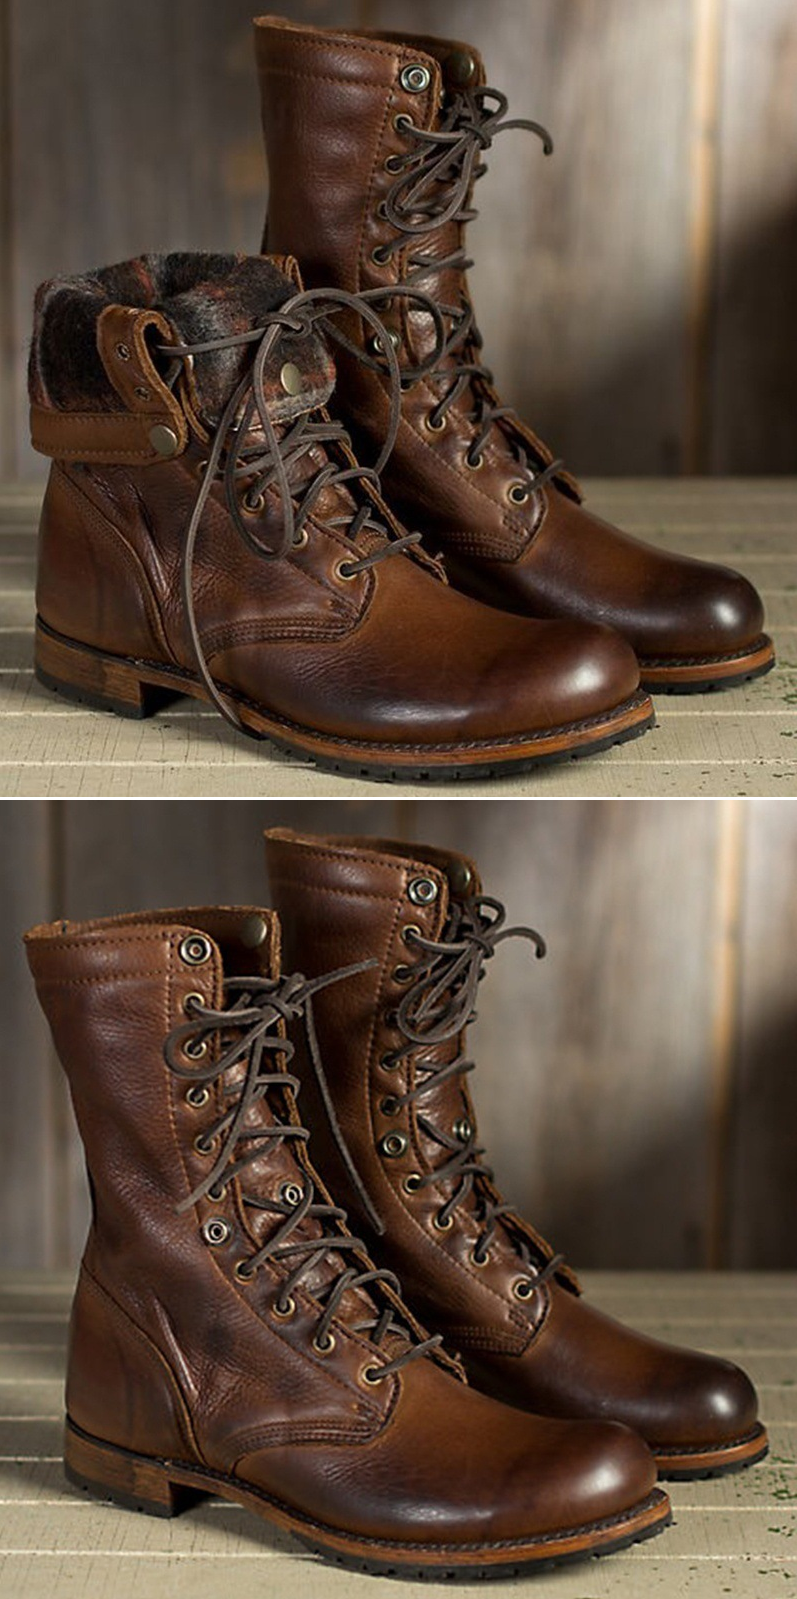 Free Shipping! Shop Now! Men Fashion High Quality Martin Boots Leather  Short Martin British Casual Boots 3500460dfef9